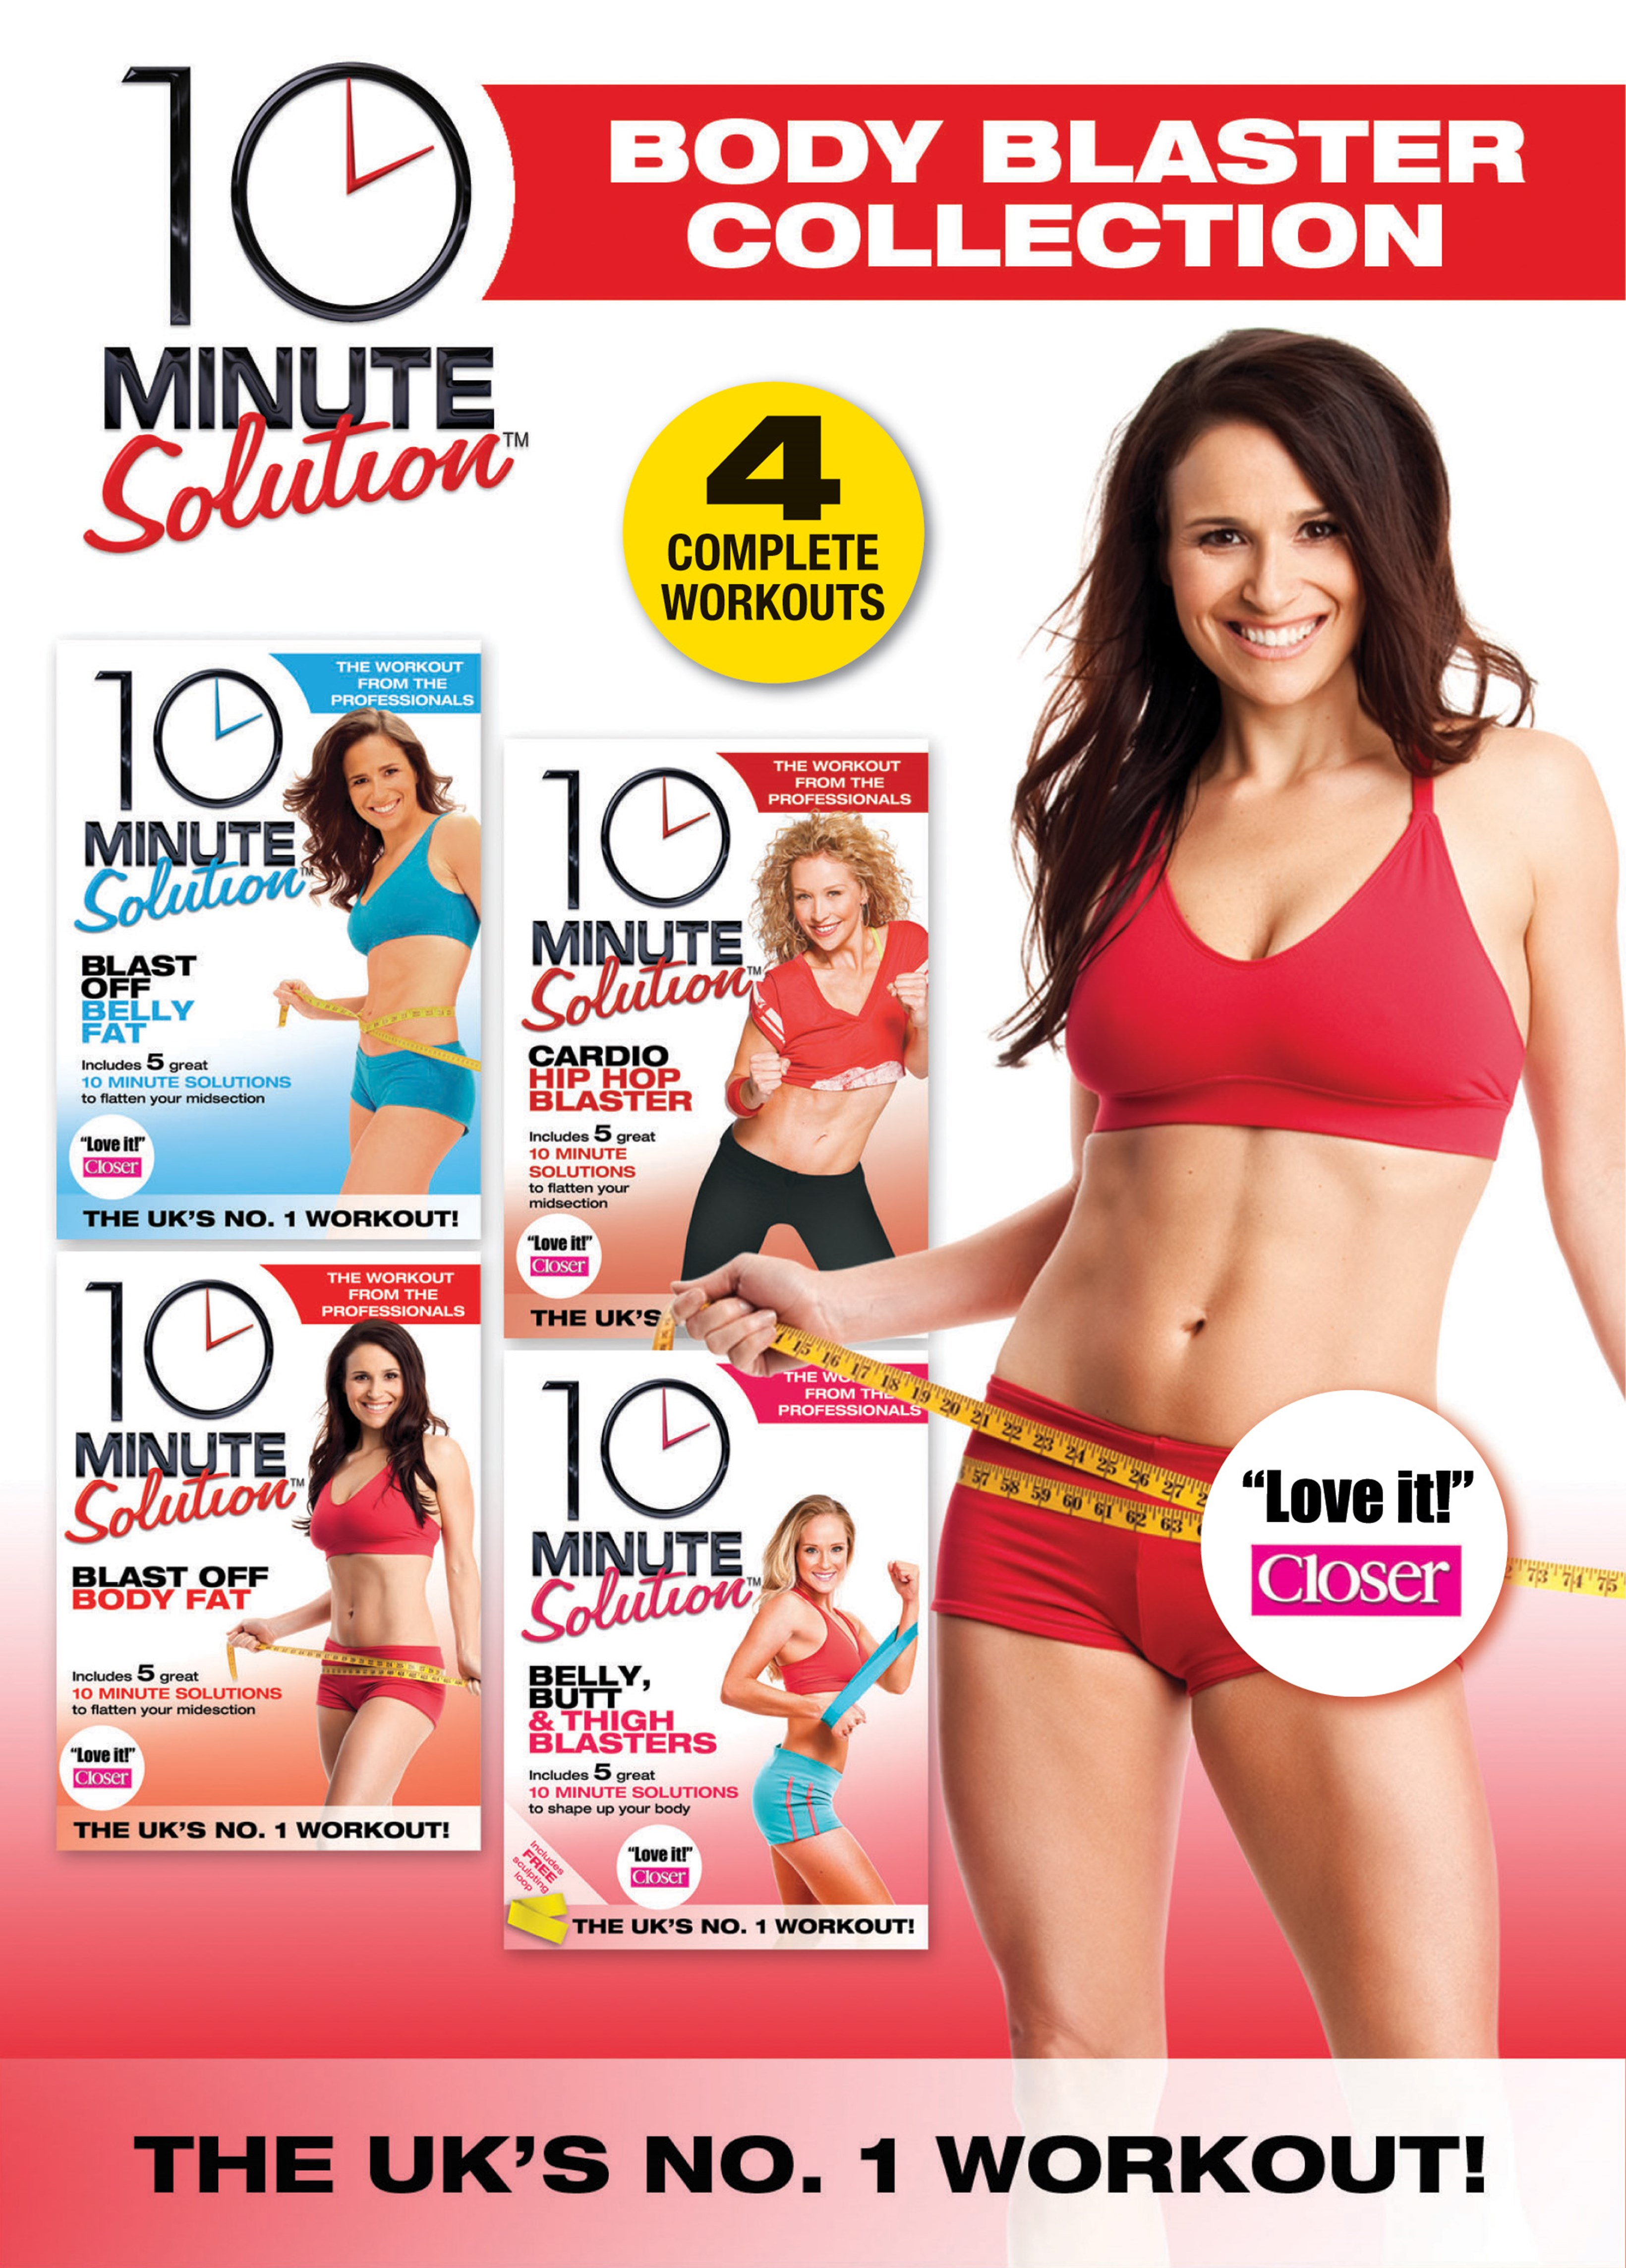 10 Minute Solution: The Body Blaster Collection - 1